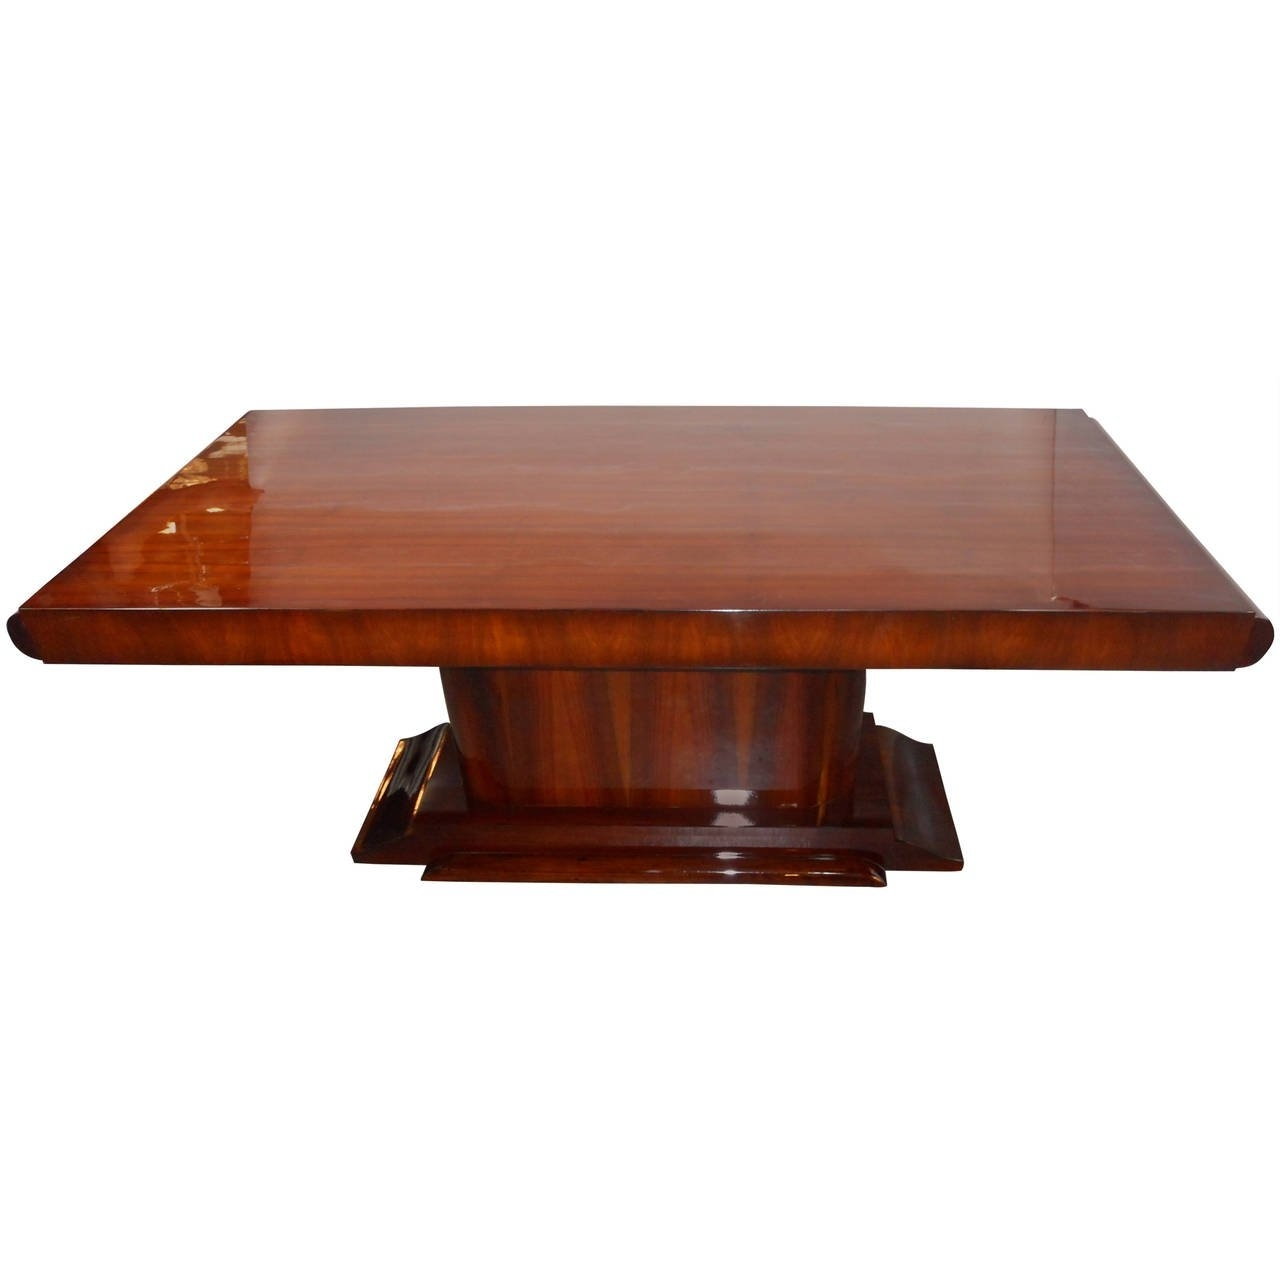 Dining Tableleon Jallot, Circa 1920S For Sale At 1Stdibs In Most Current Leon Dining Tables (Image 4 of 20)